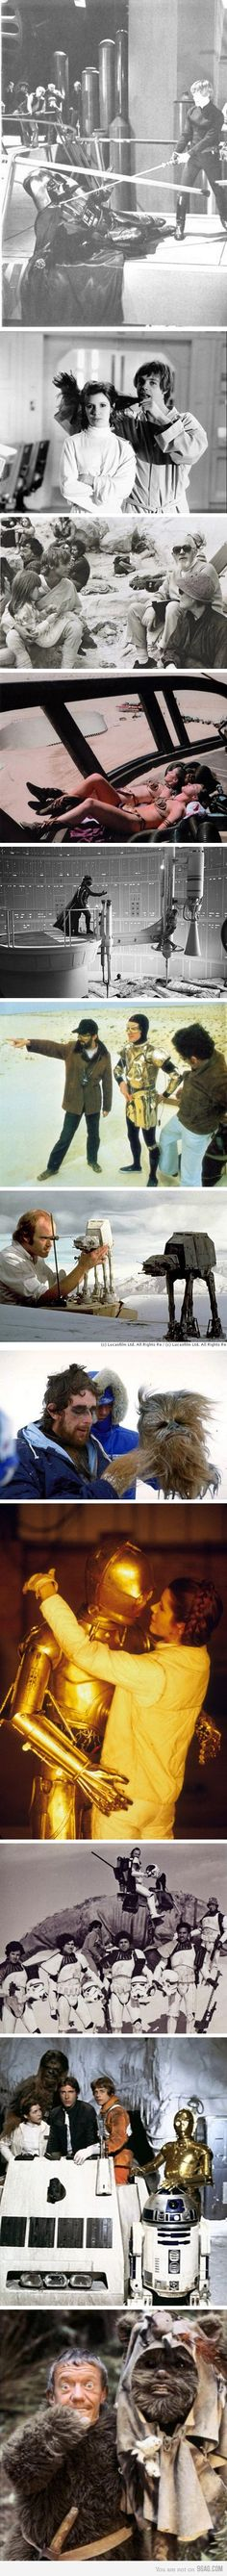 Love these behind the scenes shots from Star Wars!!